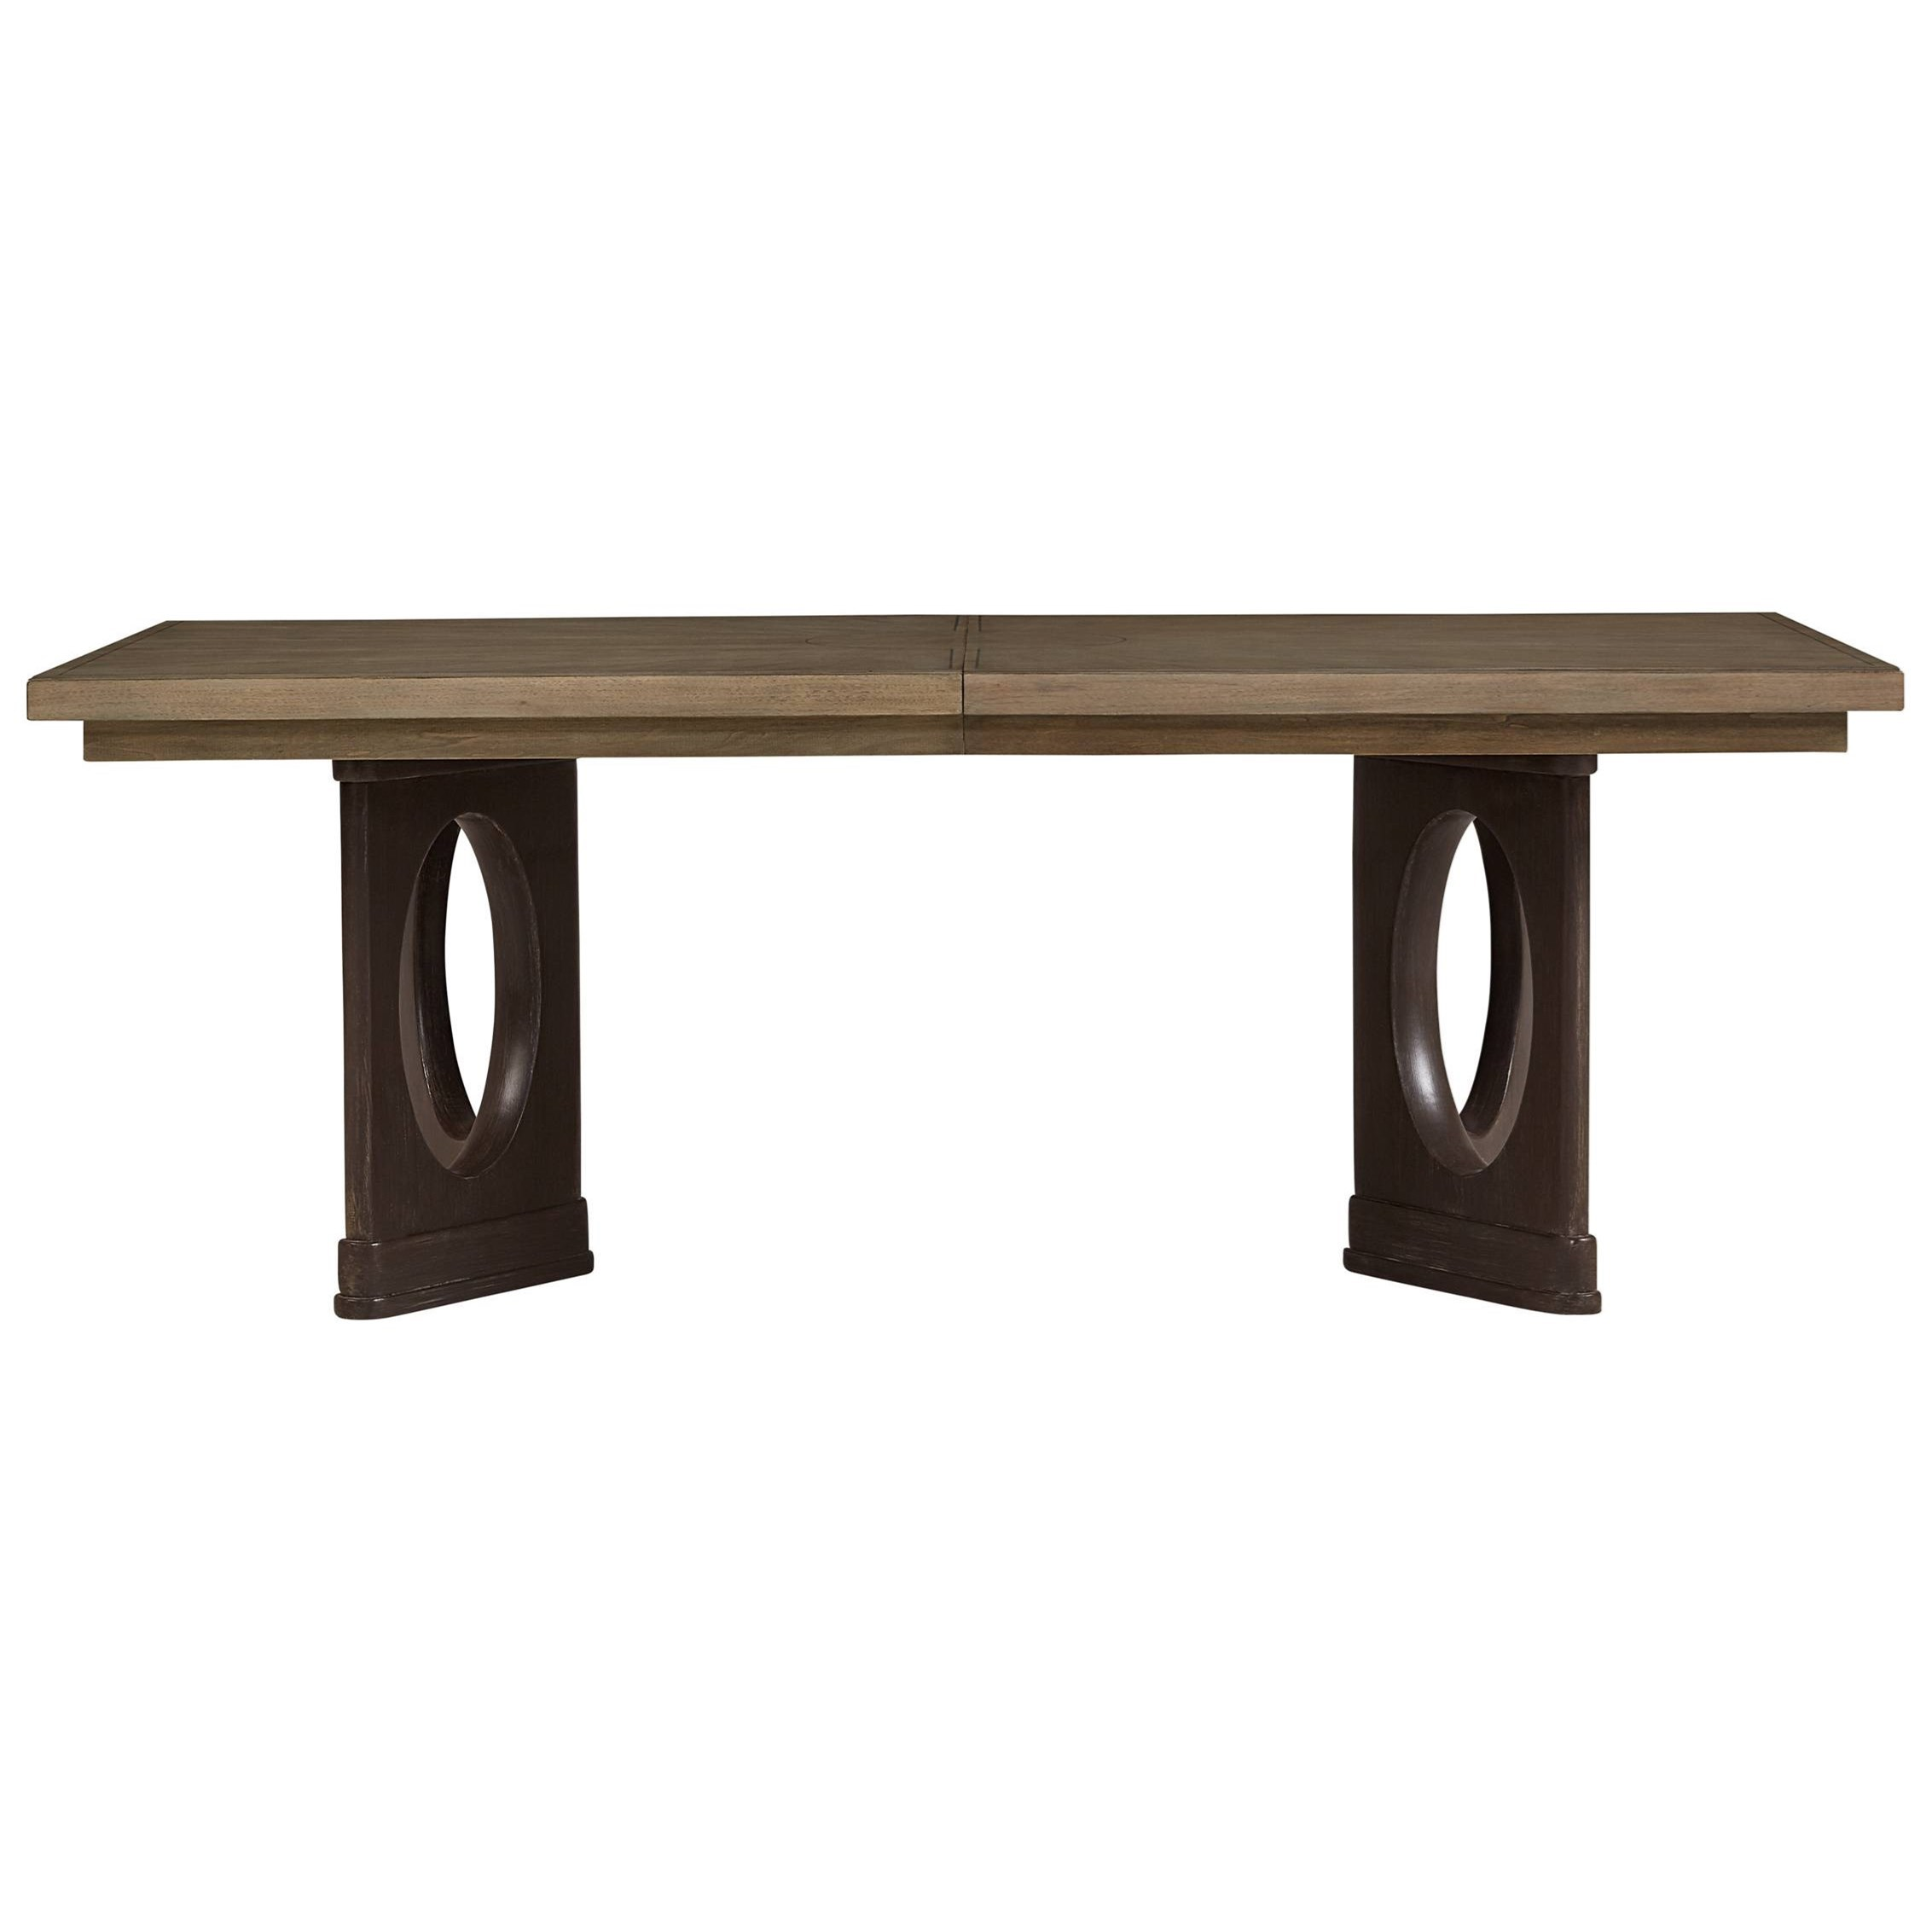 co wood table pedestal w product e fong wd double fb brothers